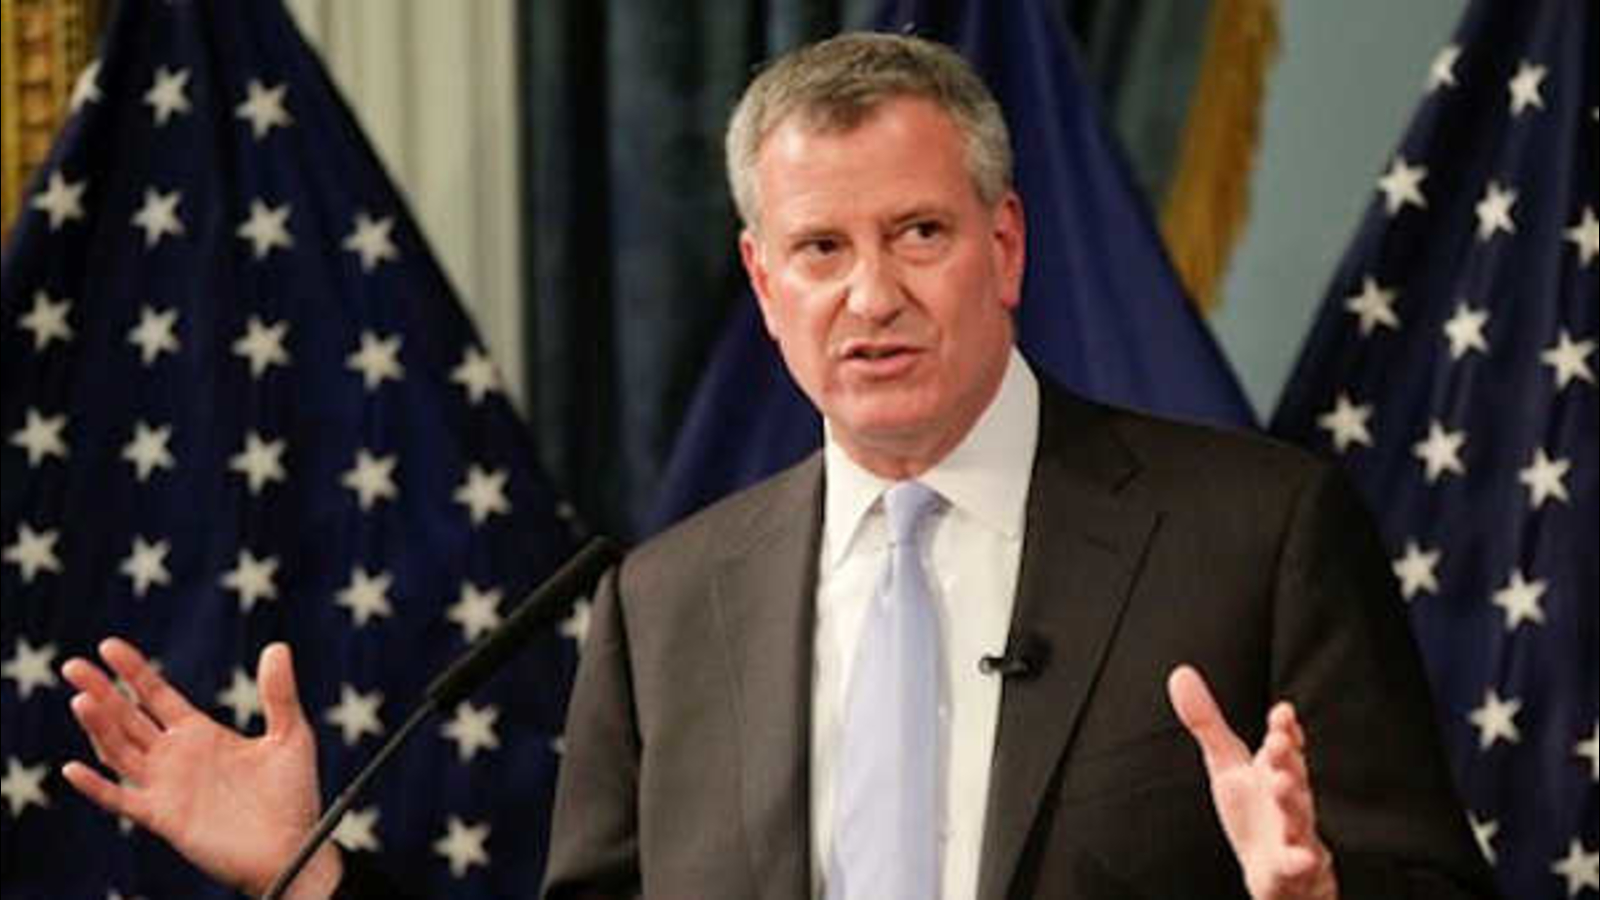 New York City Mayor Bill de Blasio to run for president, sources say